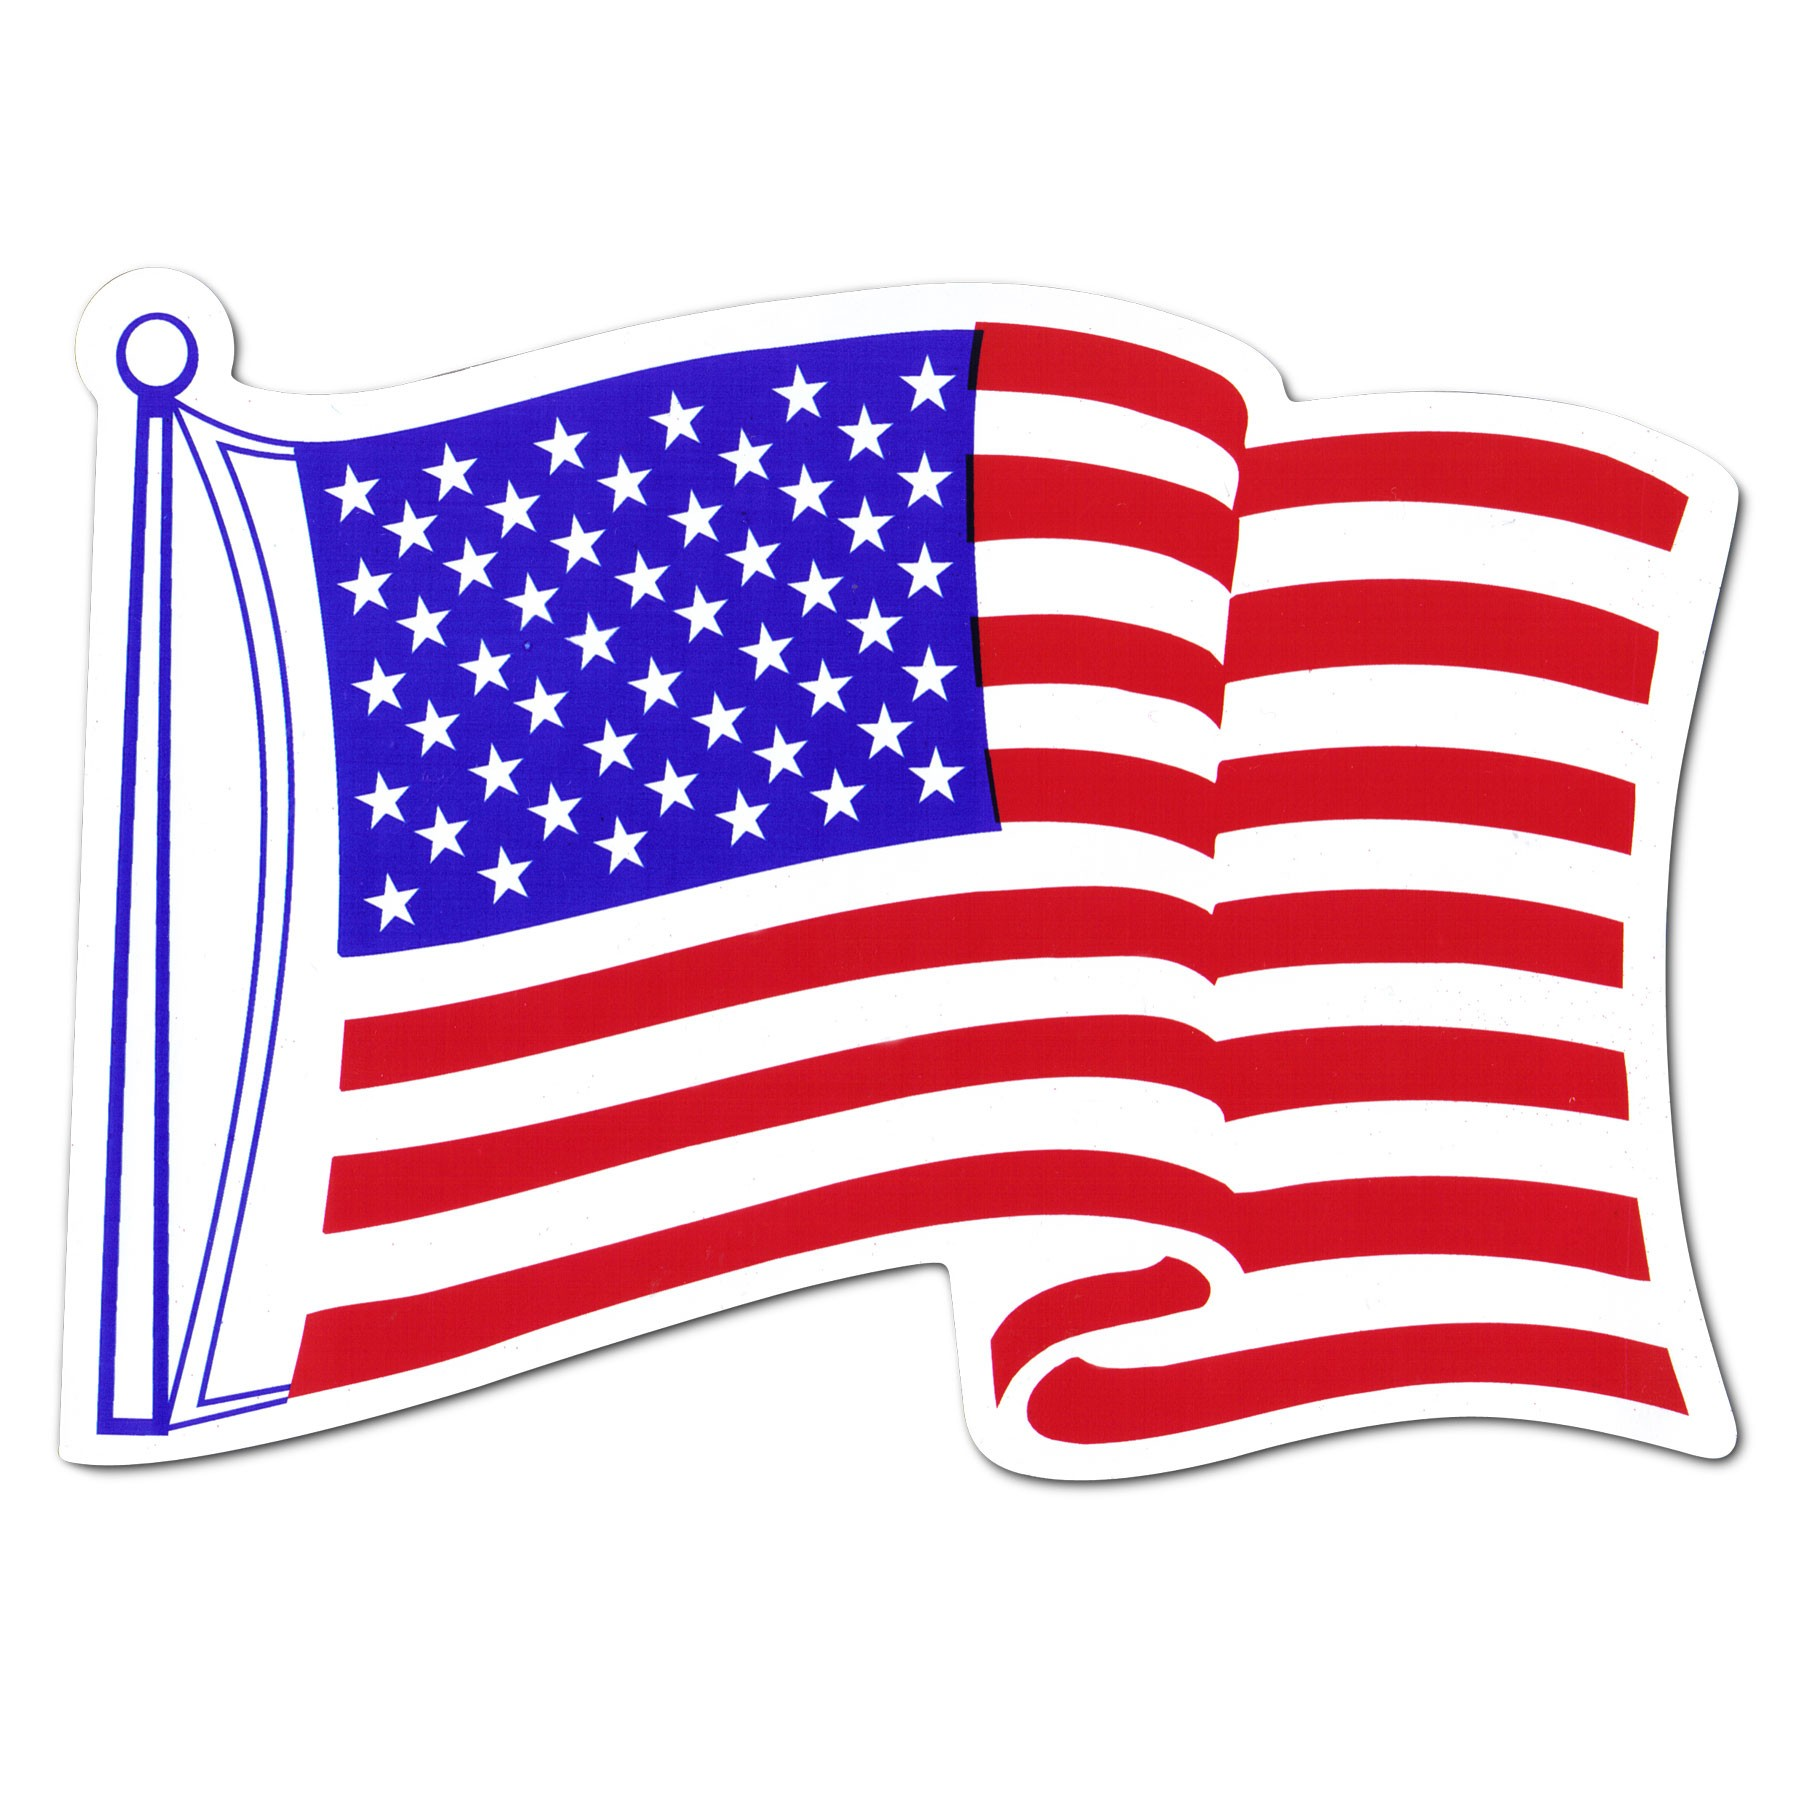 clip art of american flag animated - photo #14